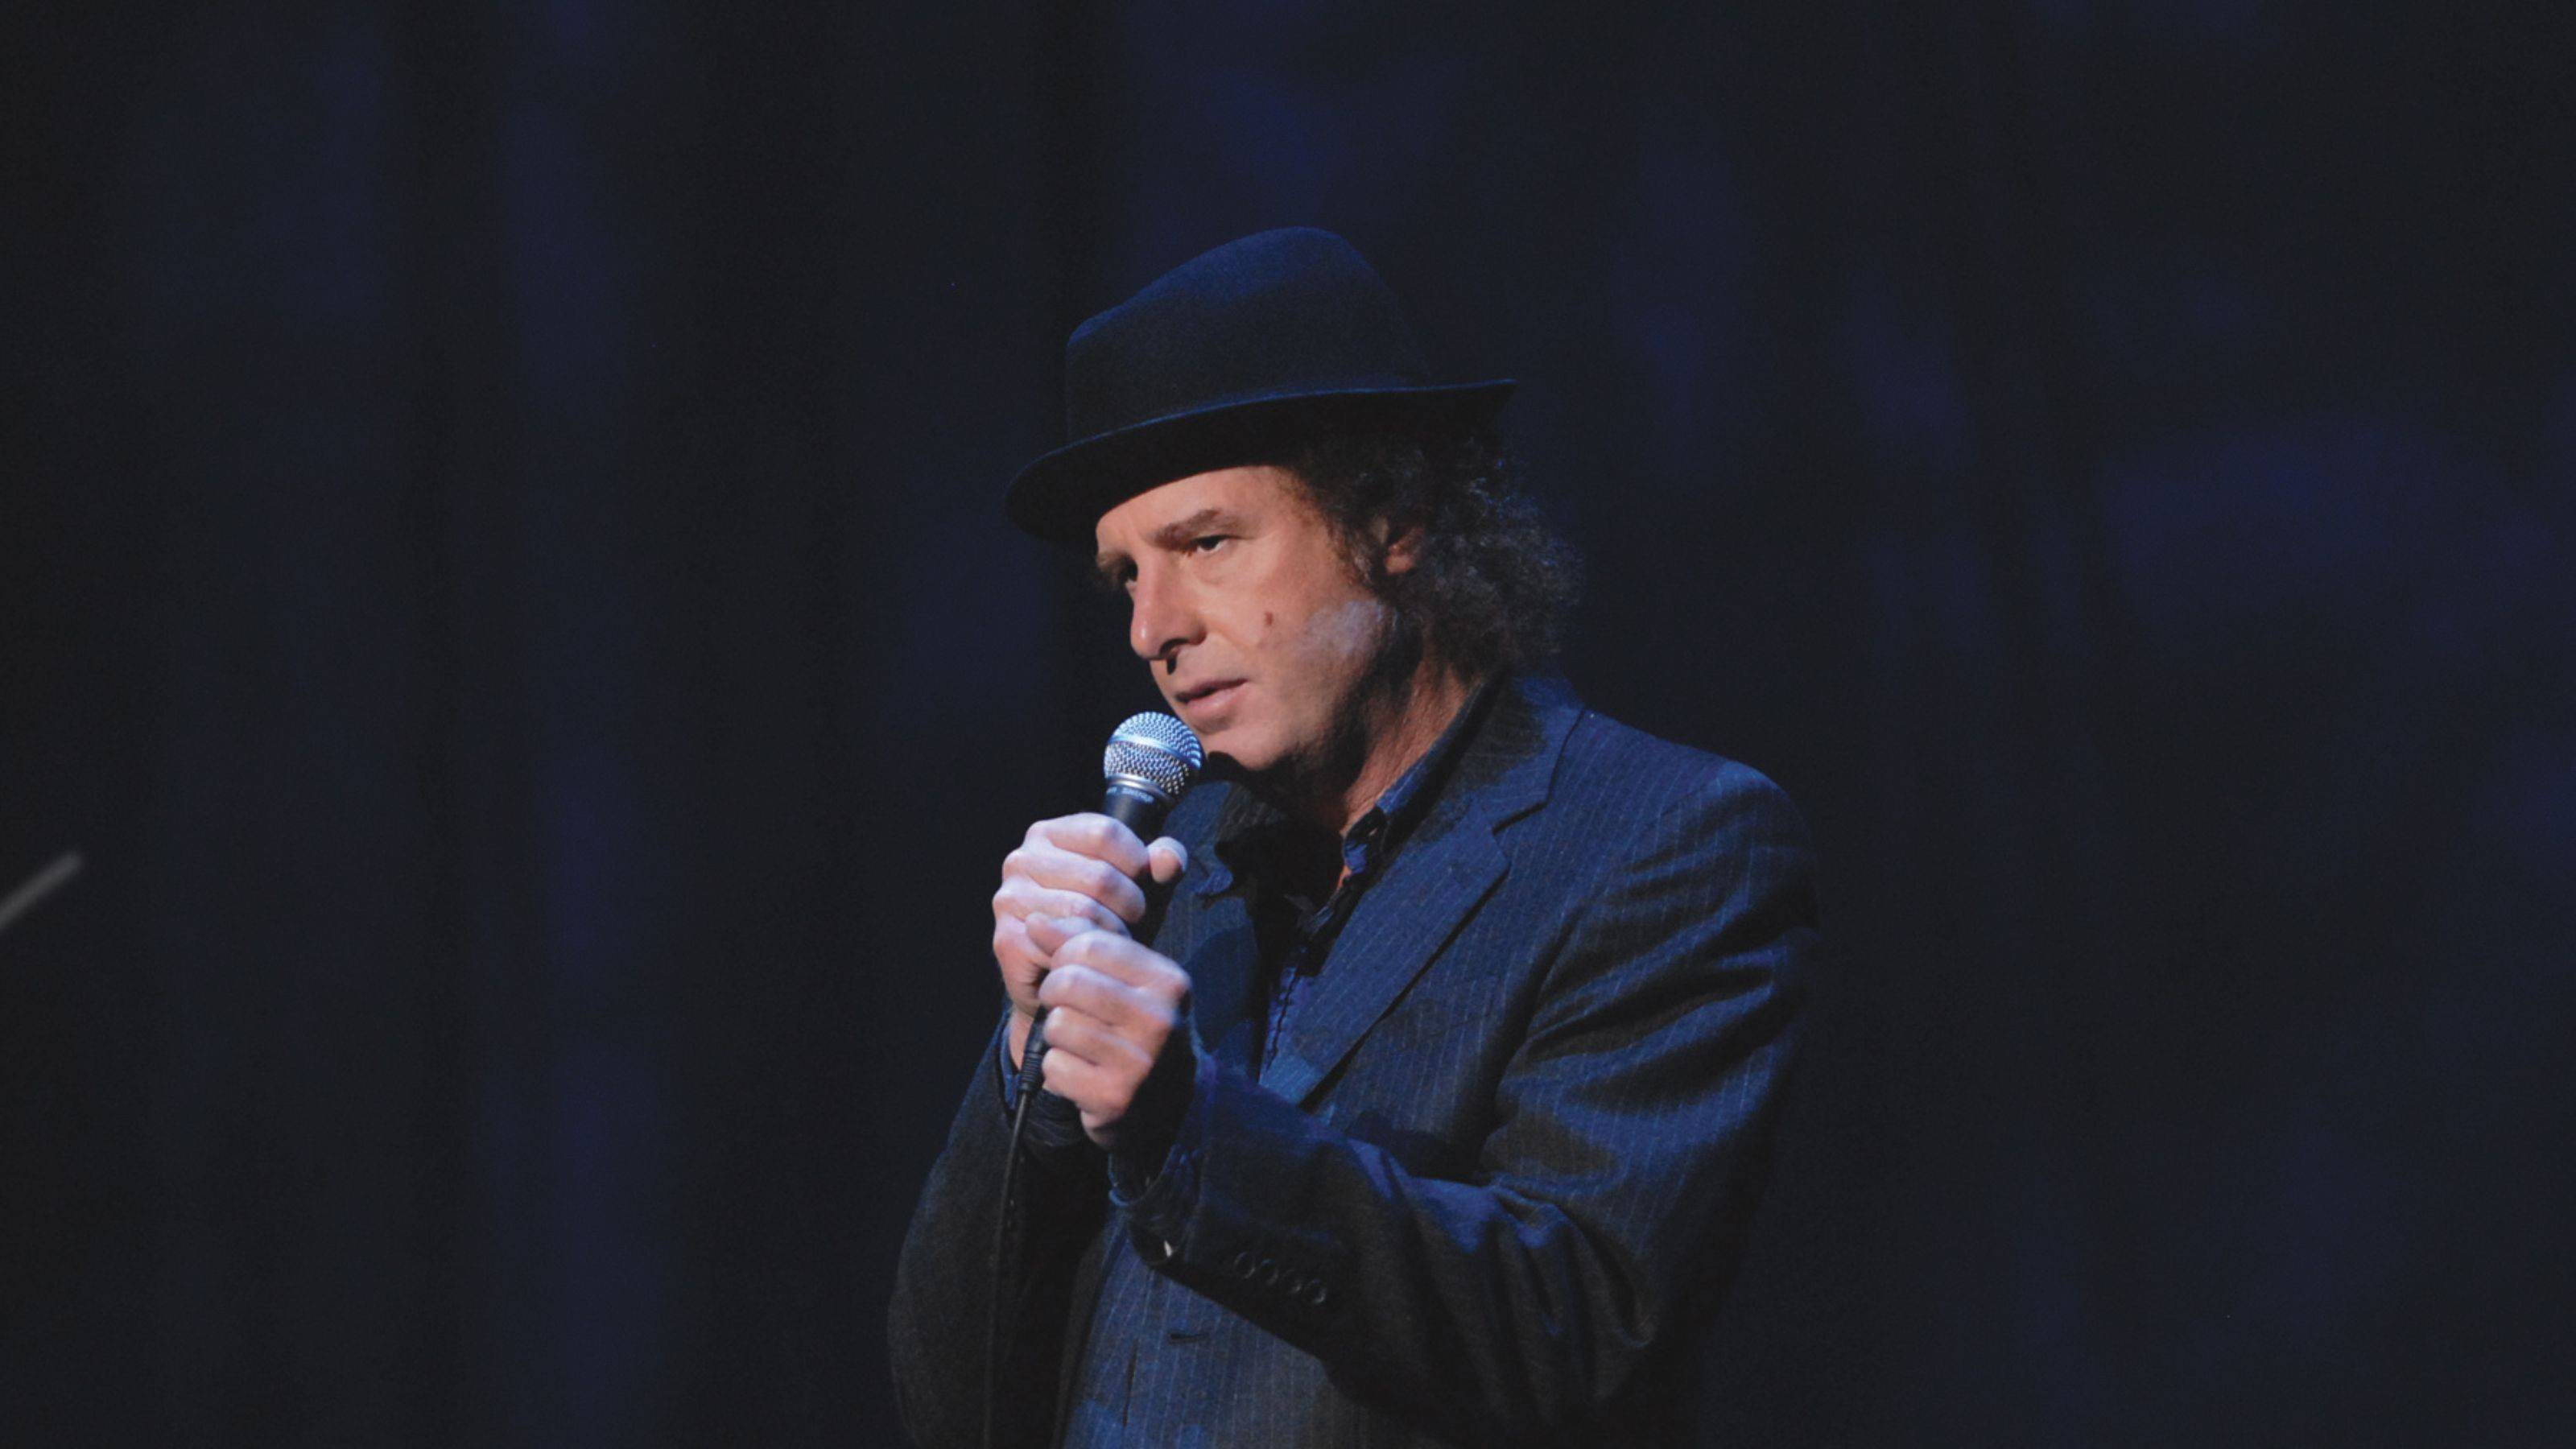 Comedian Steven Wright will perform on Tuesday, April 19, at the Arcada Theatre in St. Charles.